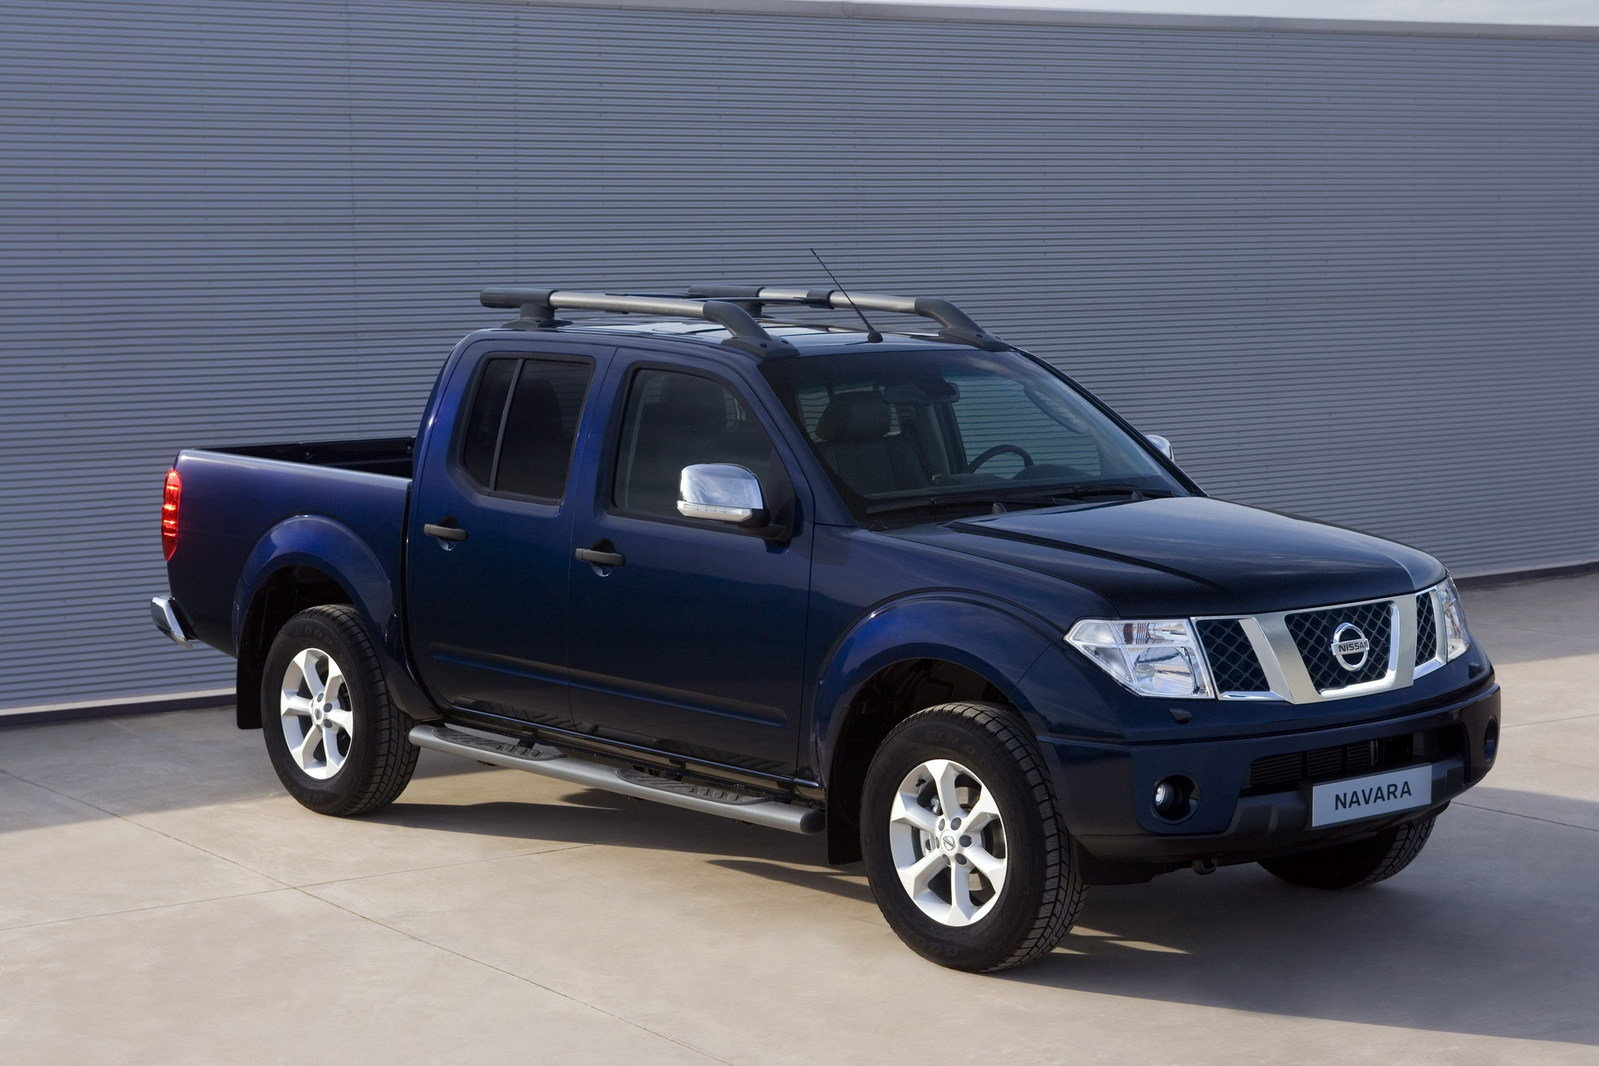 2011 nissan navara review top speed. Black Bedroom Furniture Sets. Home Design Ideas